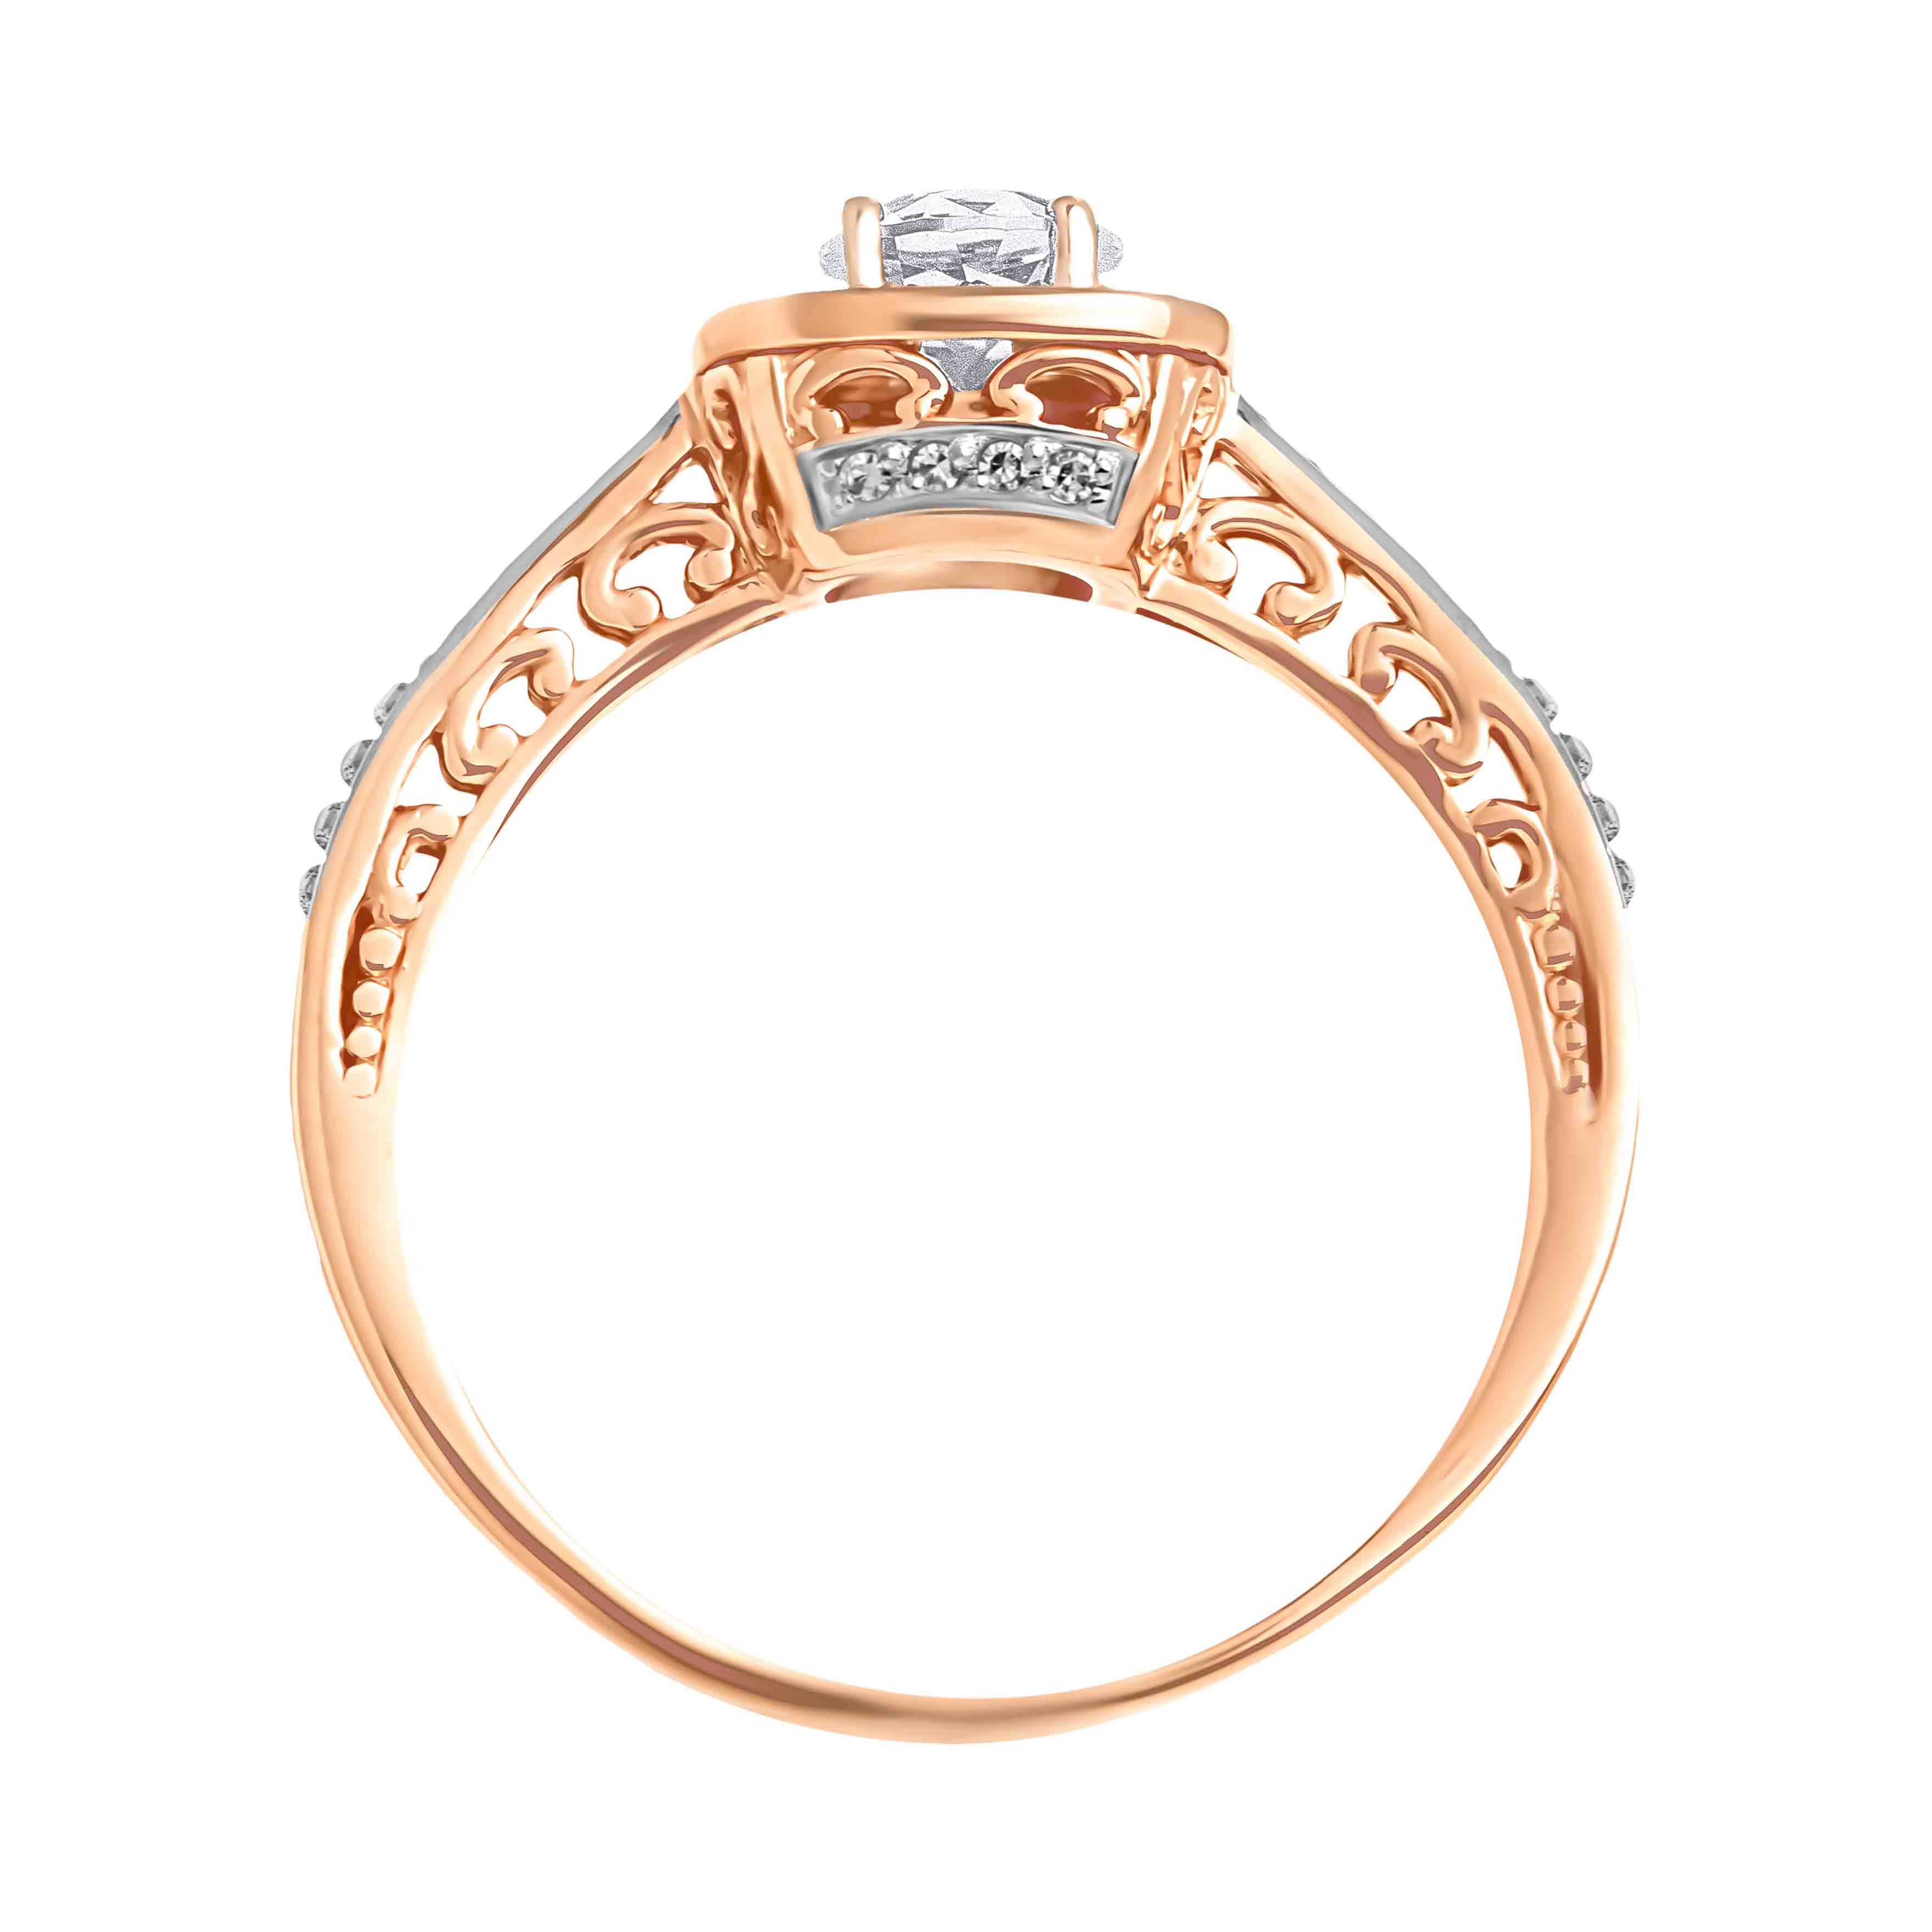 Affordable 14kt rose gold Swarovski topaz and diamond engagement ring. View 3